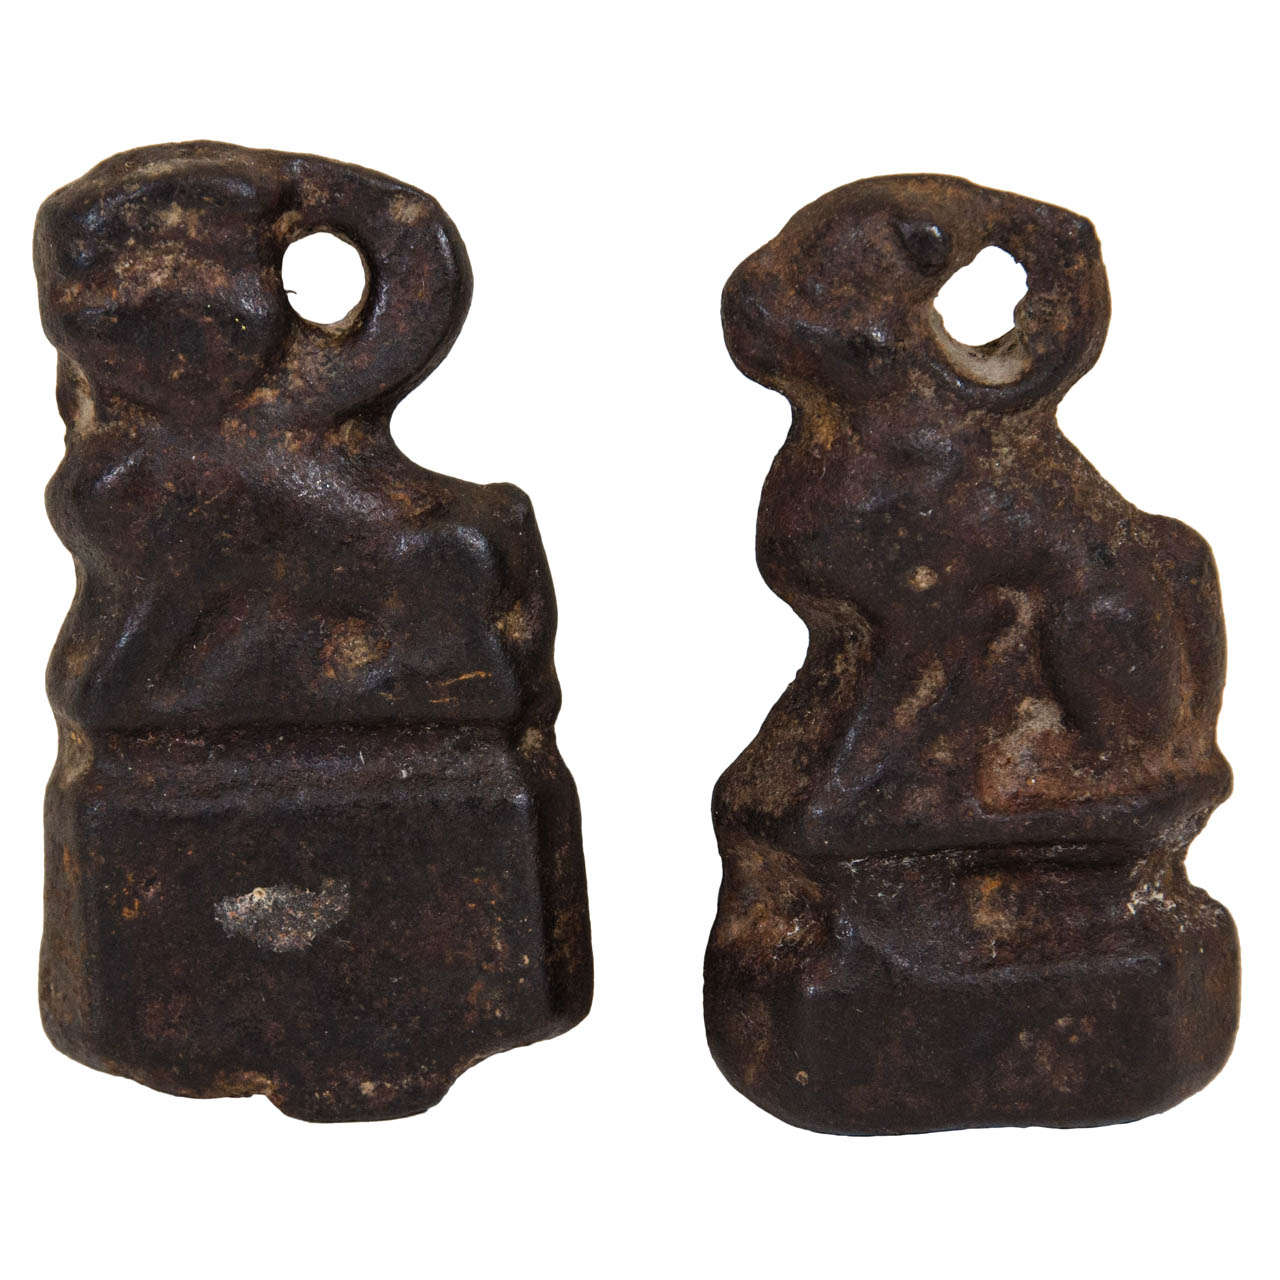 19th Century Cast Iron Weight Measures